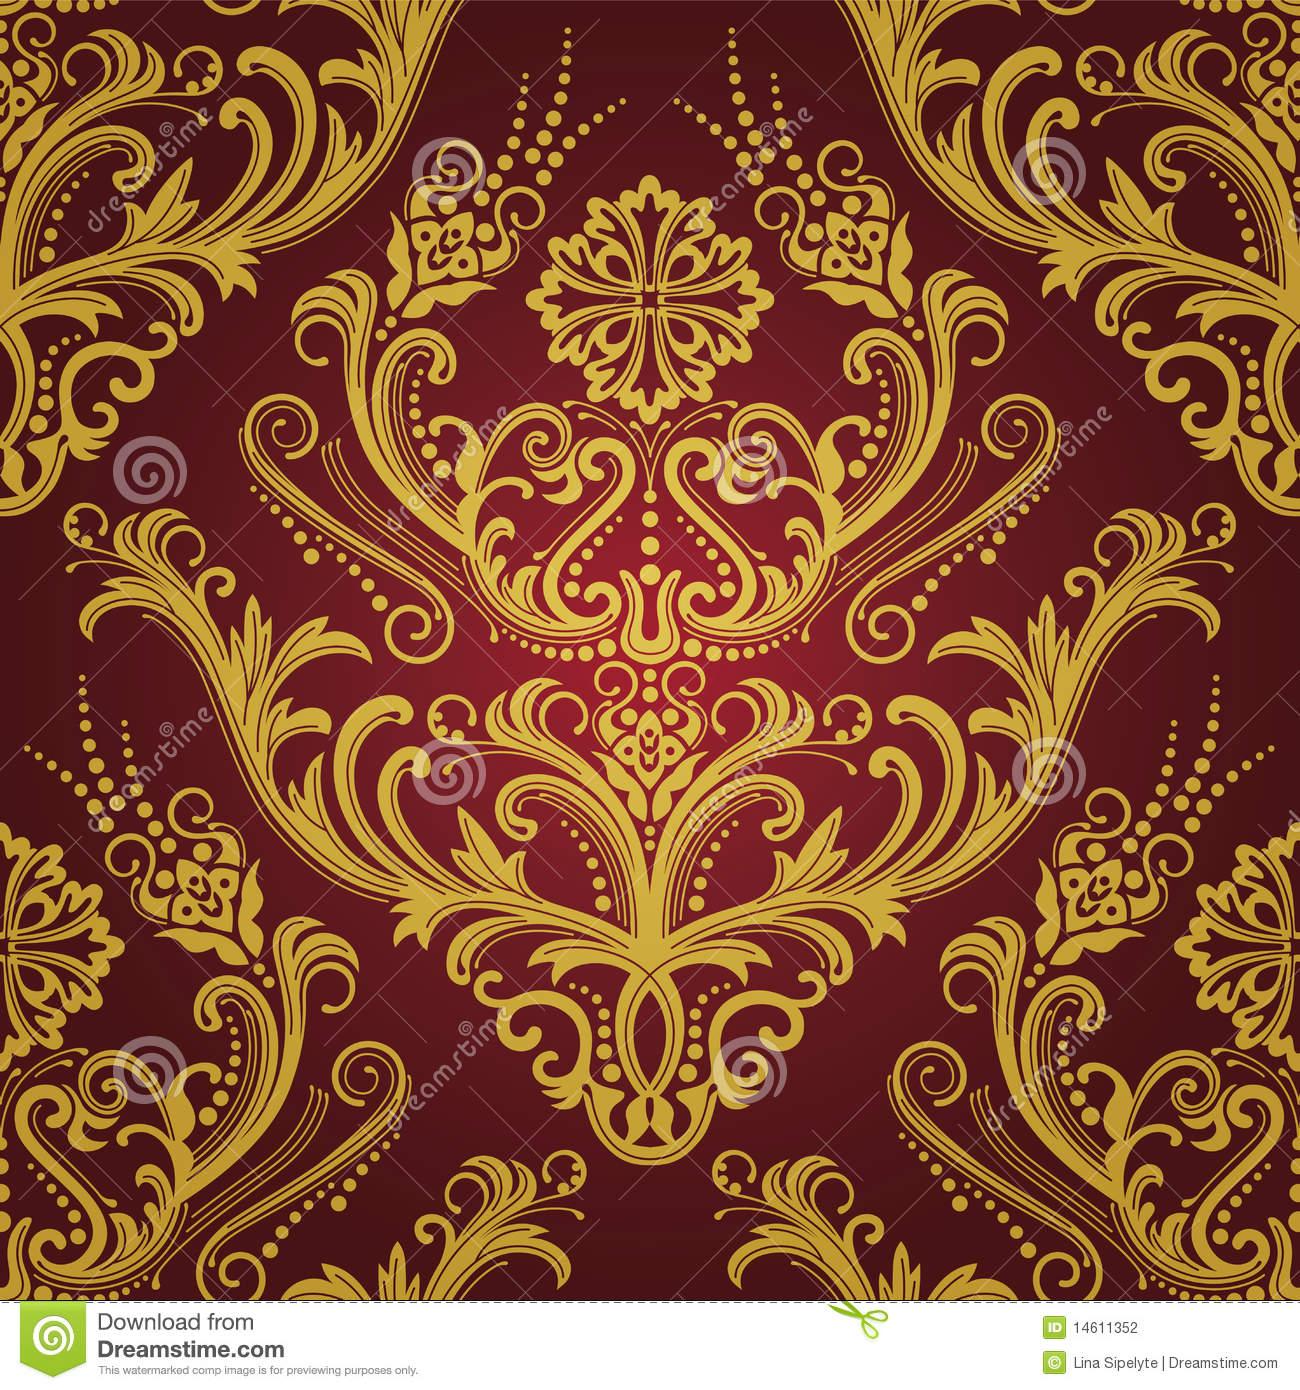 Luxury red & gold floral damask wallpaper vector illustration.